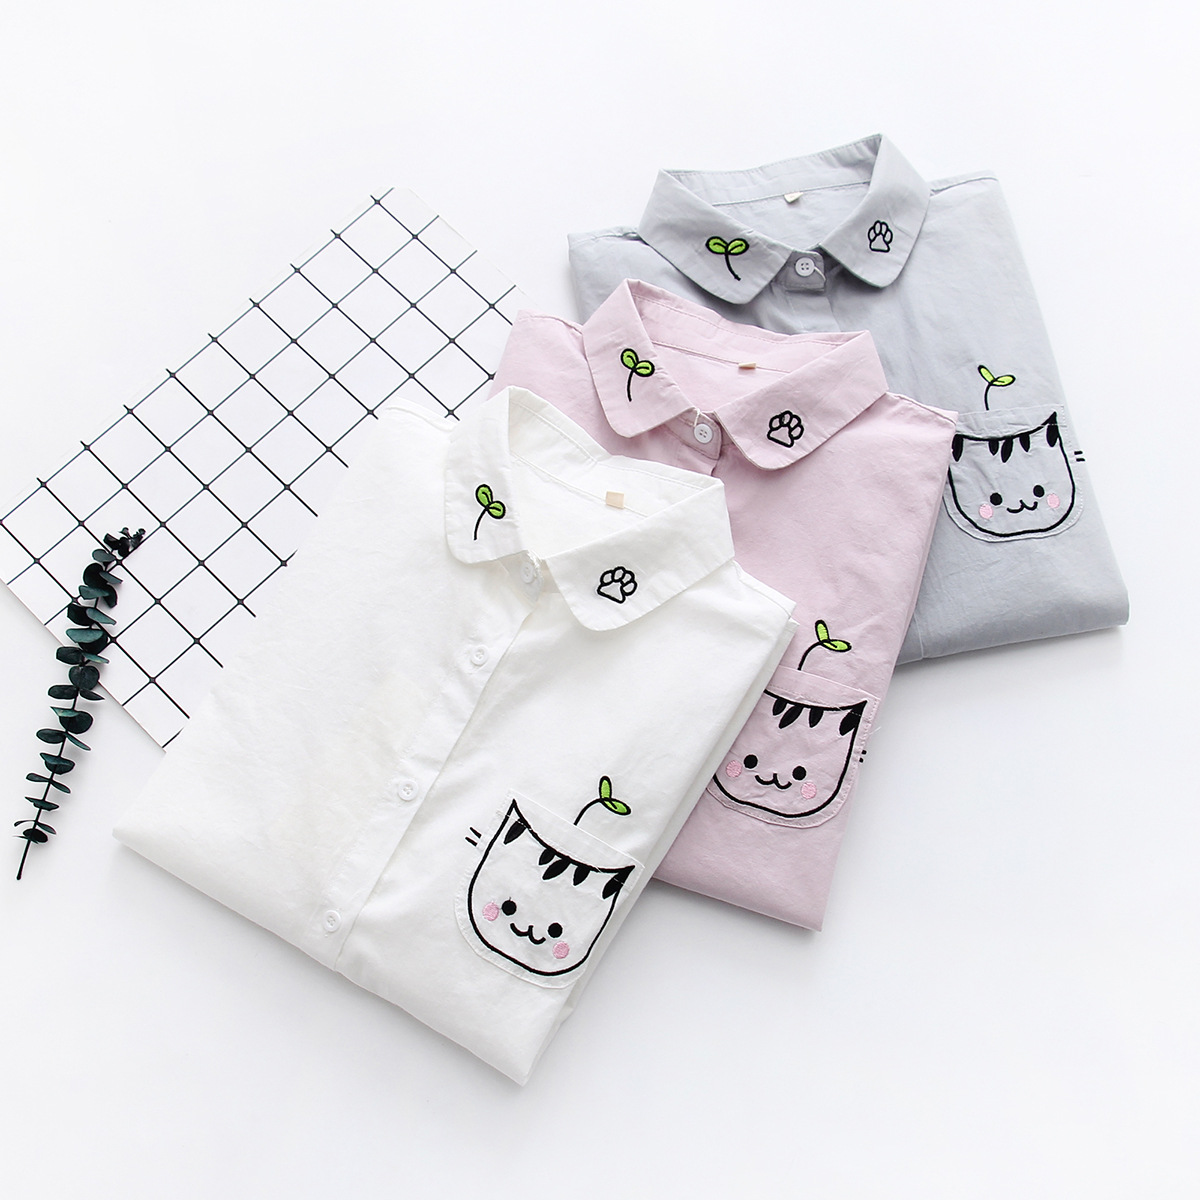 Women White Blouse Shirt Female Cotton New Summer Sweet Cartoon Cat Embroidery Shirts Women Tops Ladies Clothing 2019